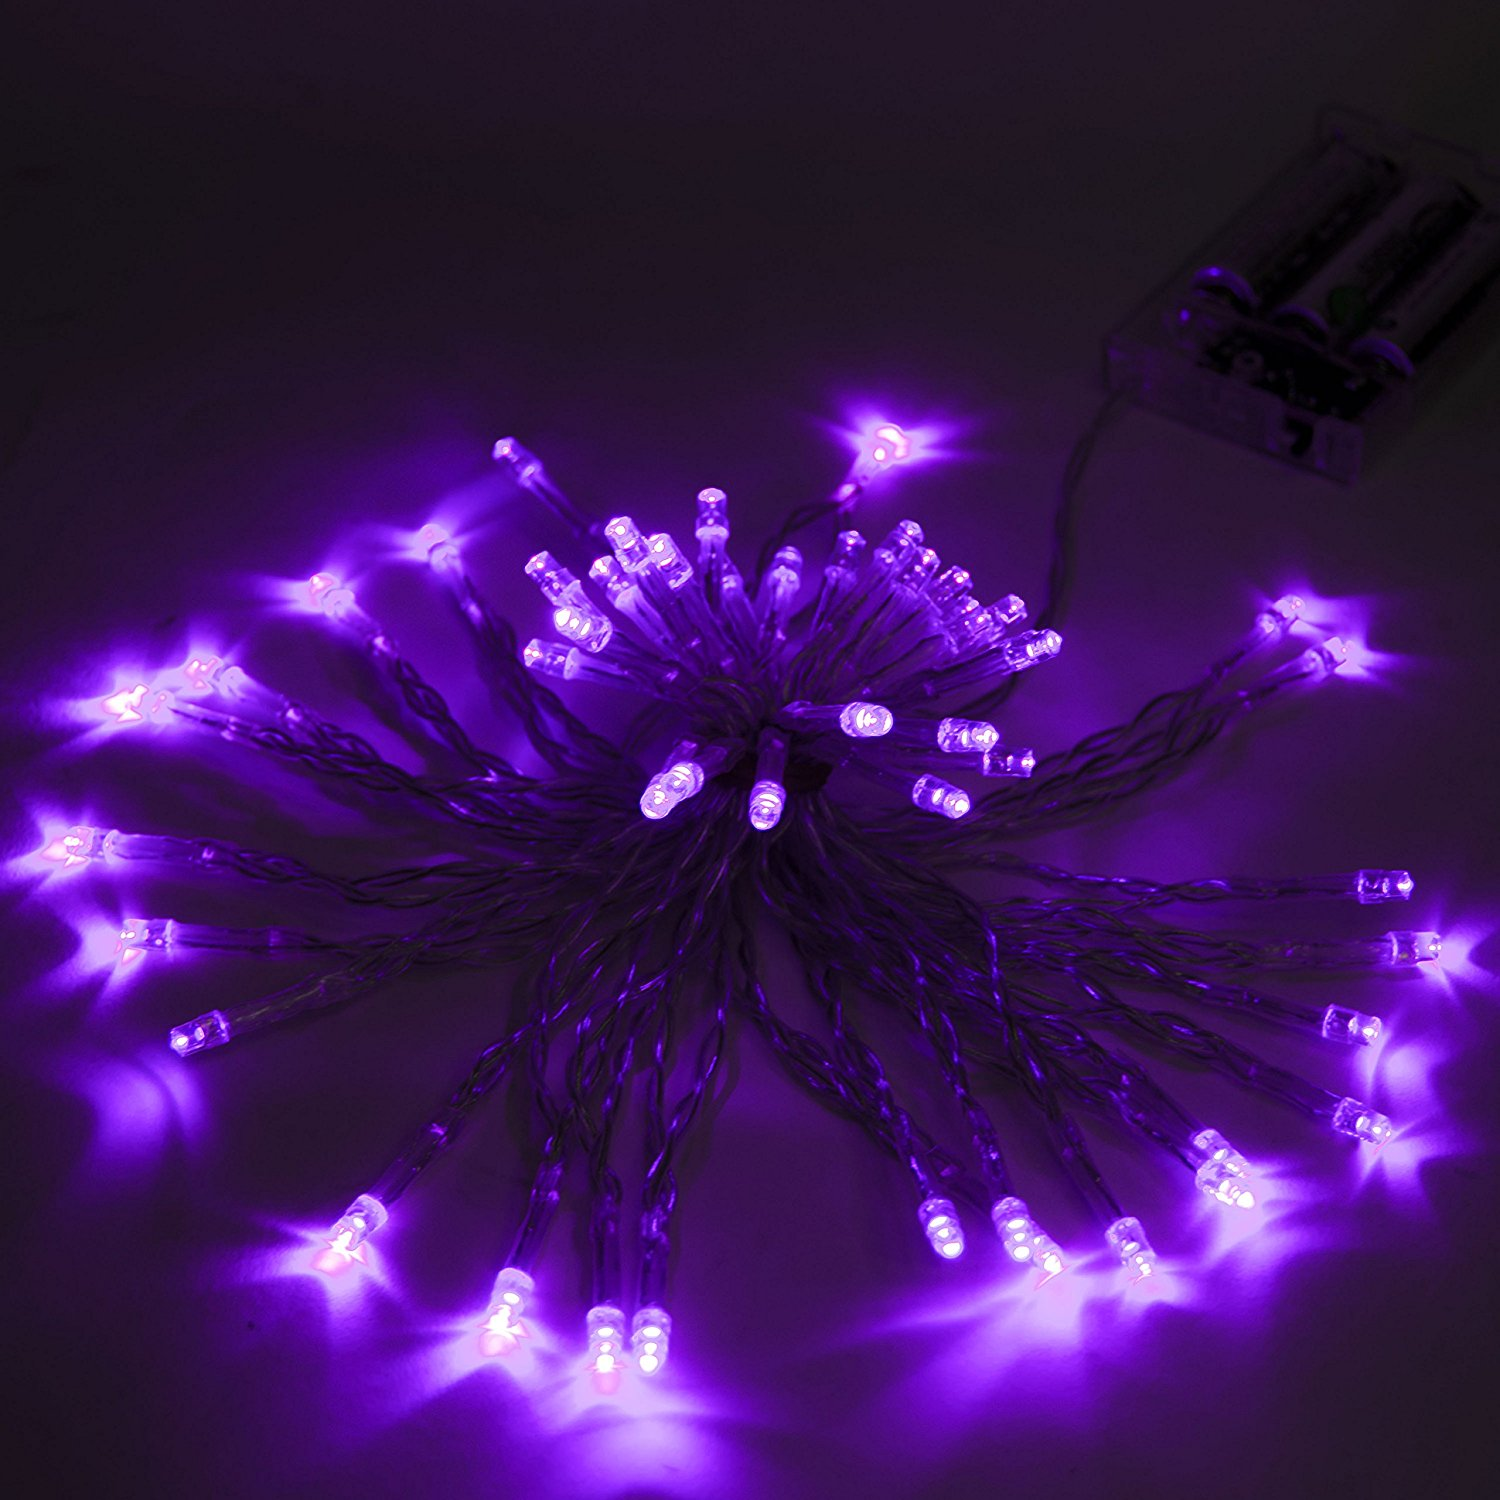 30 LED 10 Feet Battery Operated String Lights Christmas Lights Purple Color